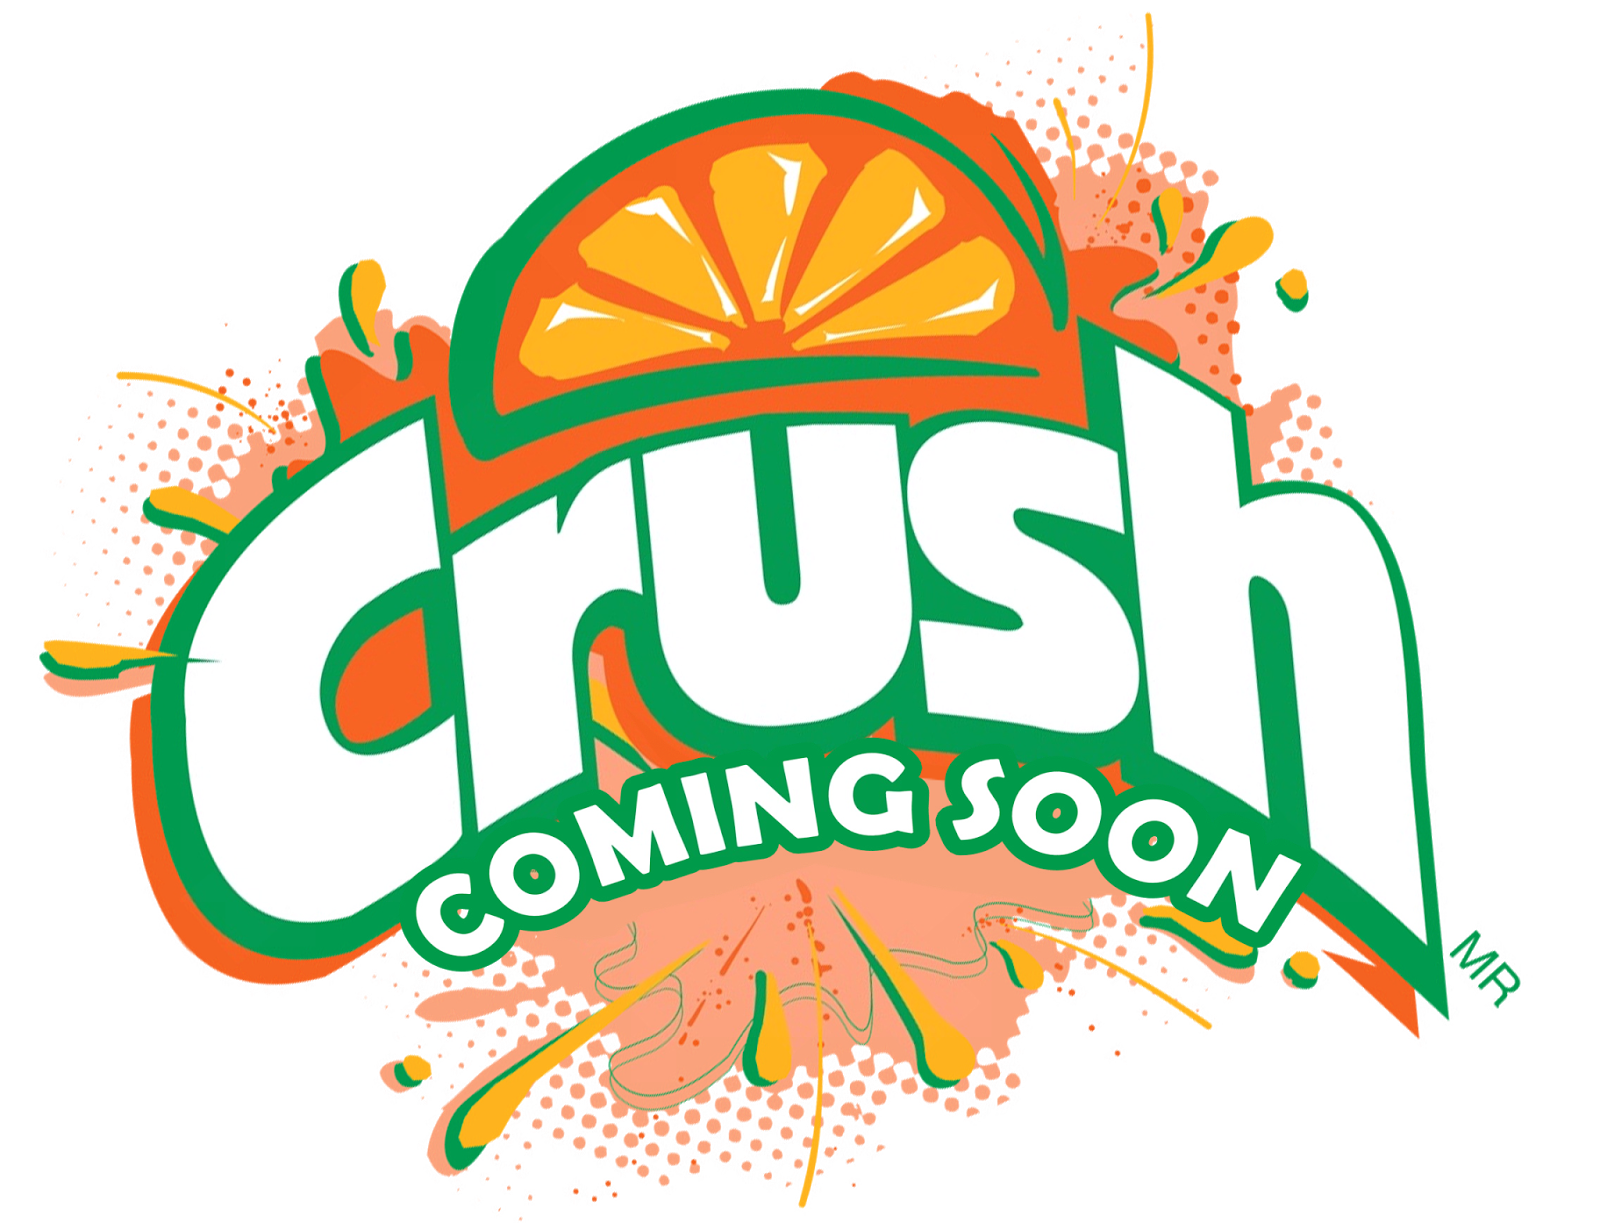 Orange Crush Coming Soon Logo | Logos-of-Interest ...